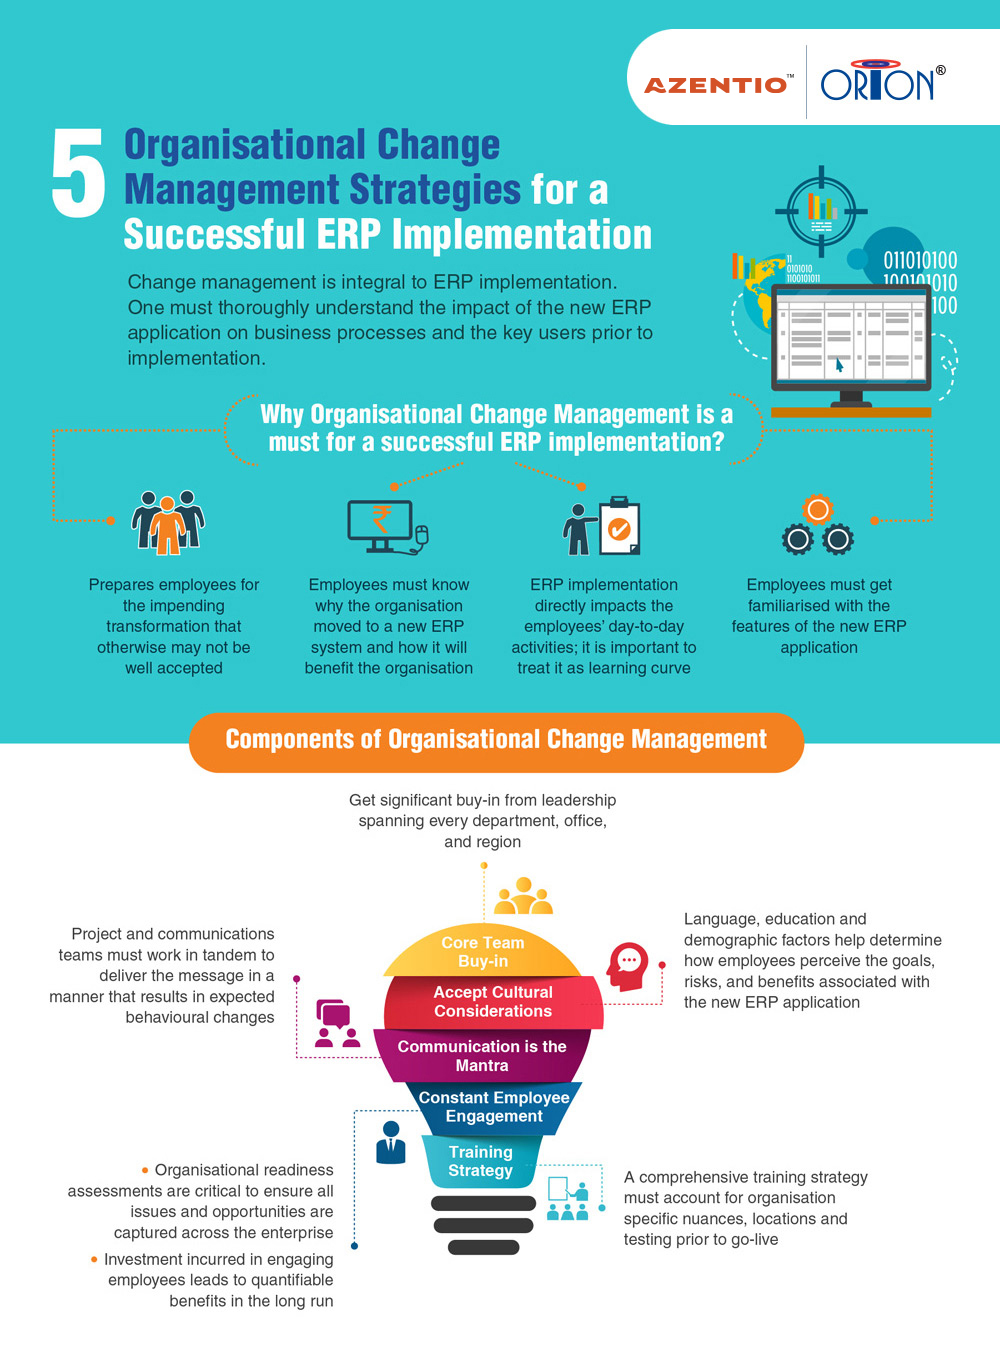 5 Organisational Change Management Strategies for a Successful ERP Implementation